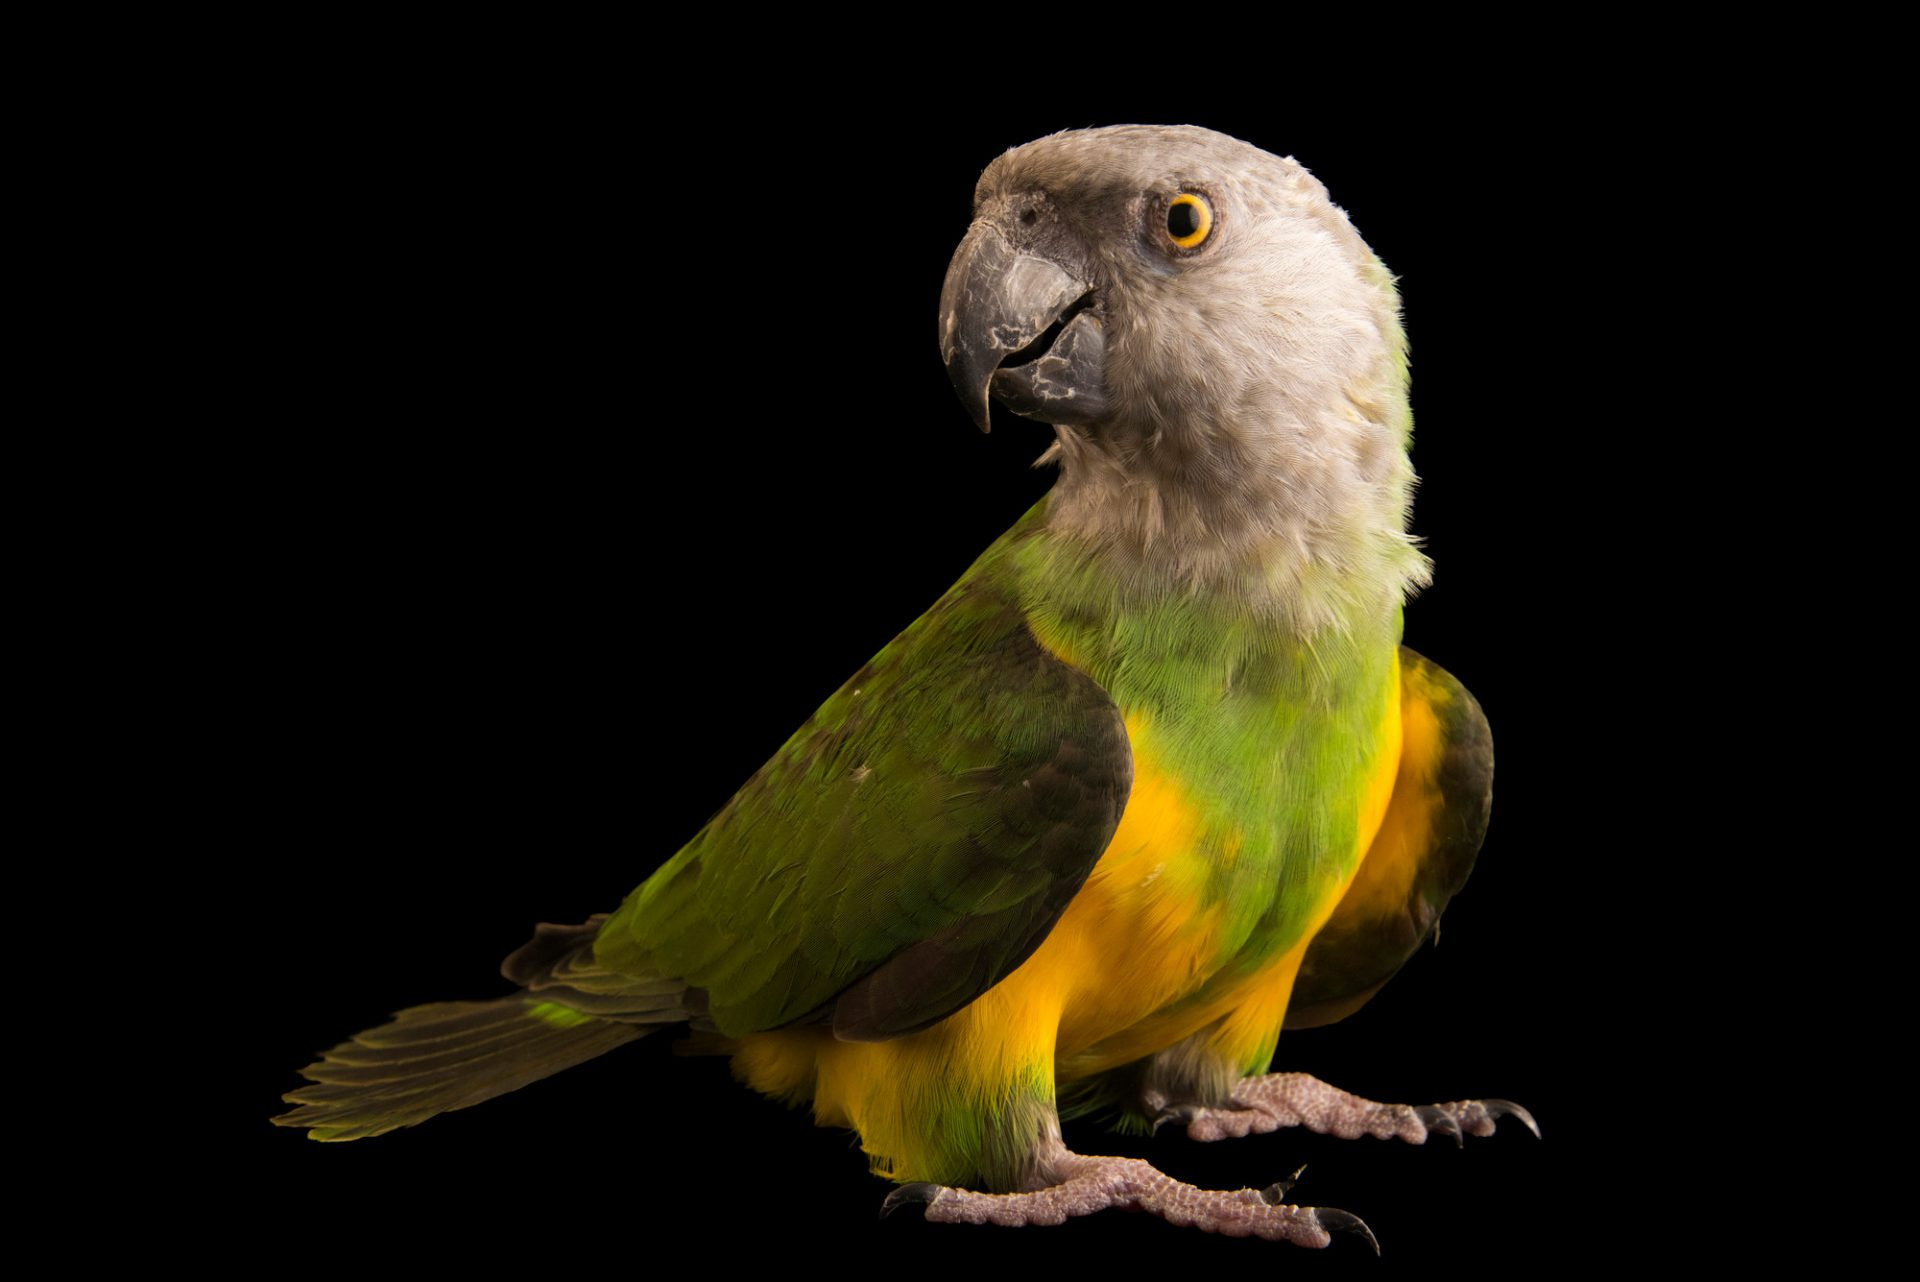 Photo: Senegal parrot (Poicephalus senegalus senegalus) at a private collection in Tenerife.